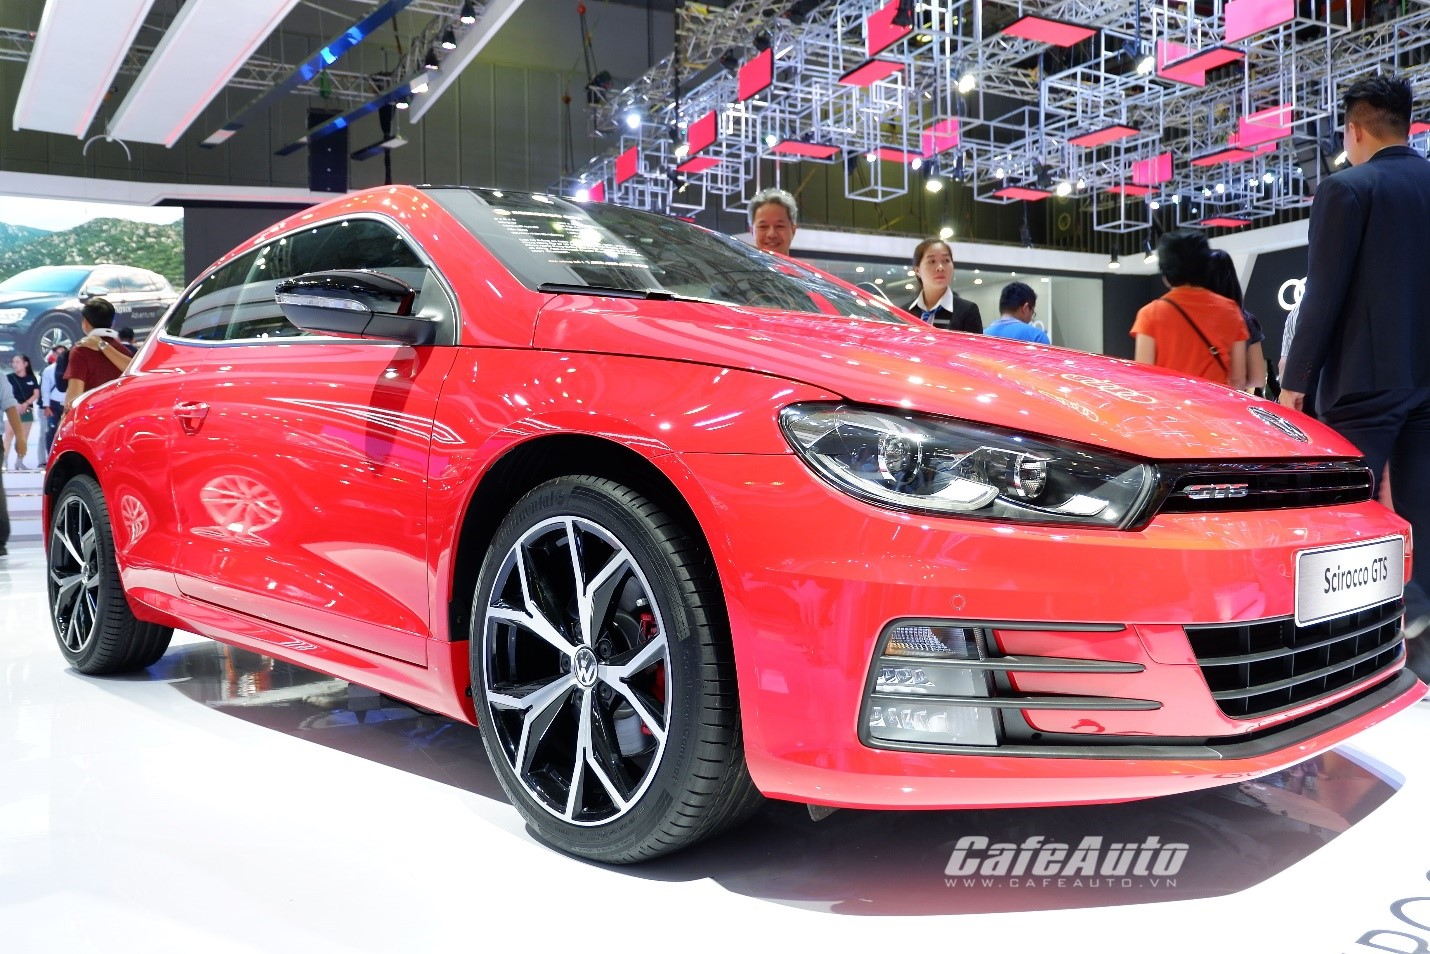 can-canh-mau-xe-the-thao-'gia-mem'-volkswagen-scirocco-tai-trien-lam-vms-2018